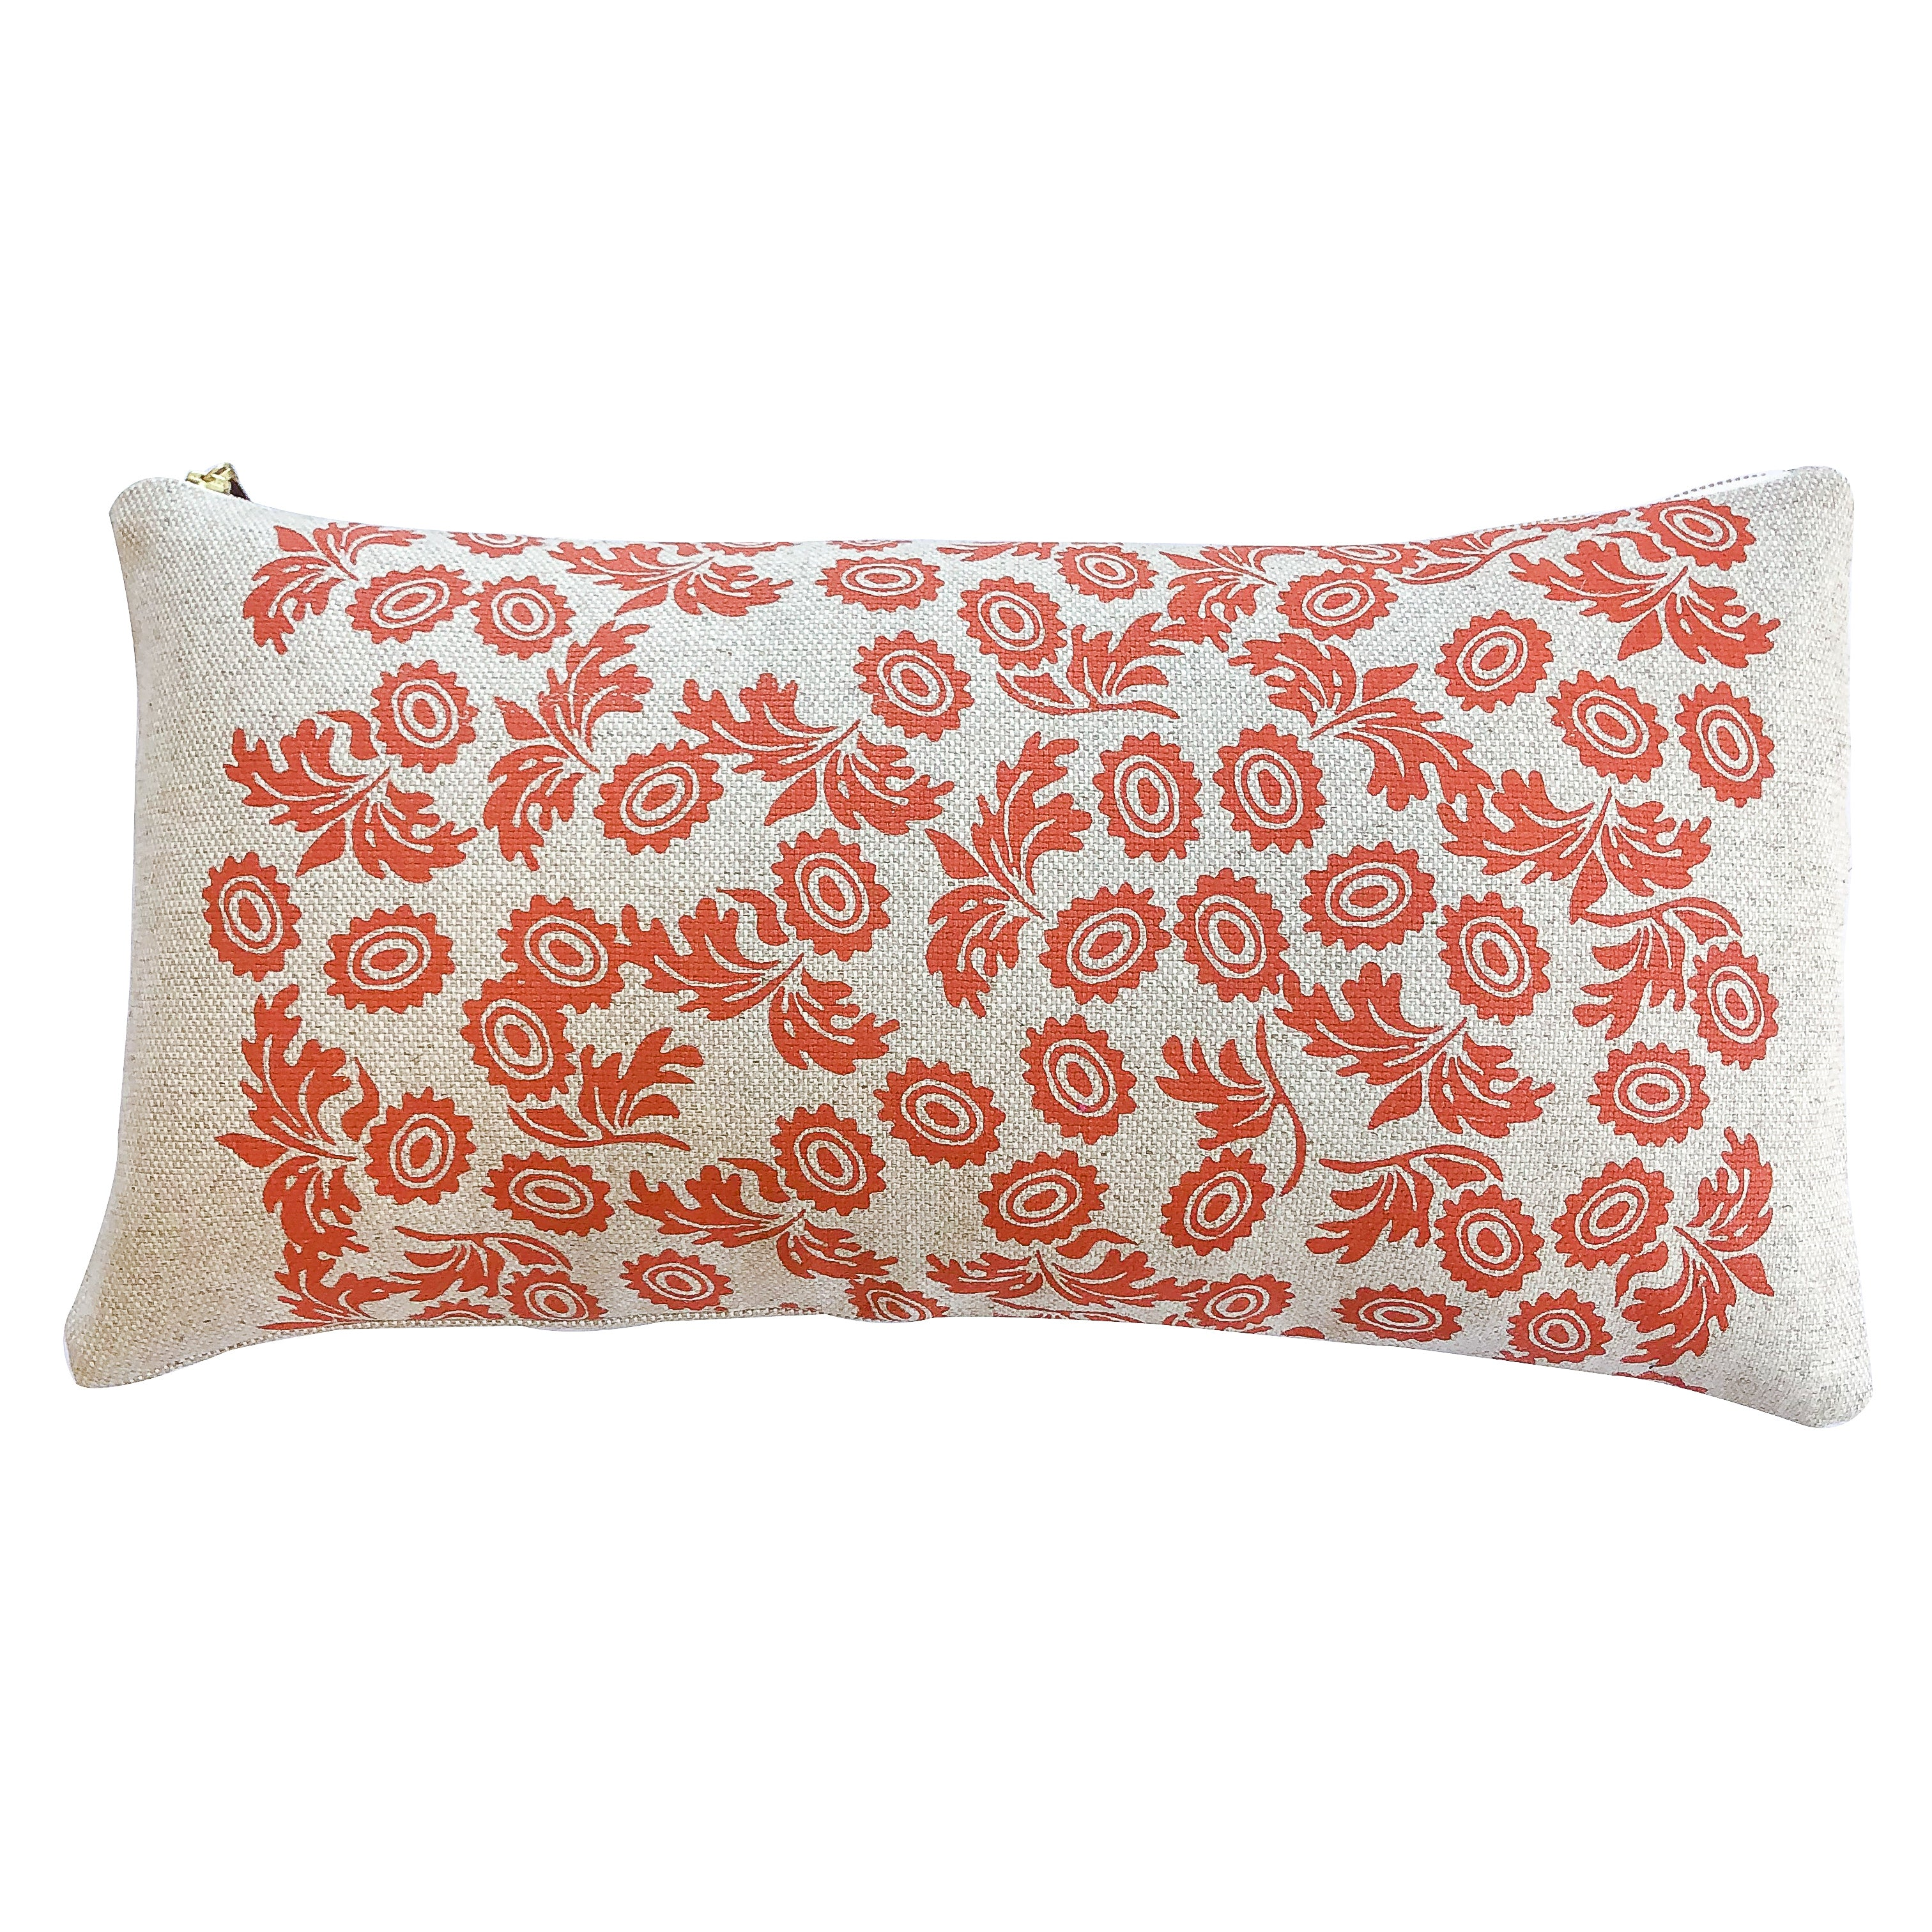 WALLFLOWER TOMATO PILLOW ON HEAVY OATMEAL LINEN